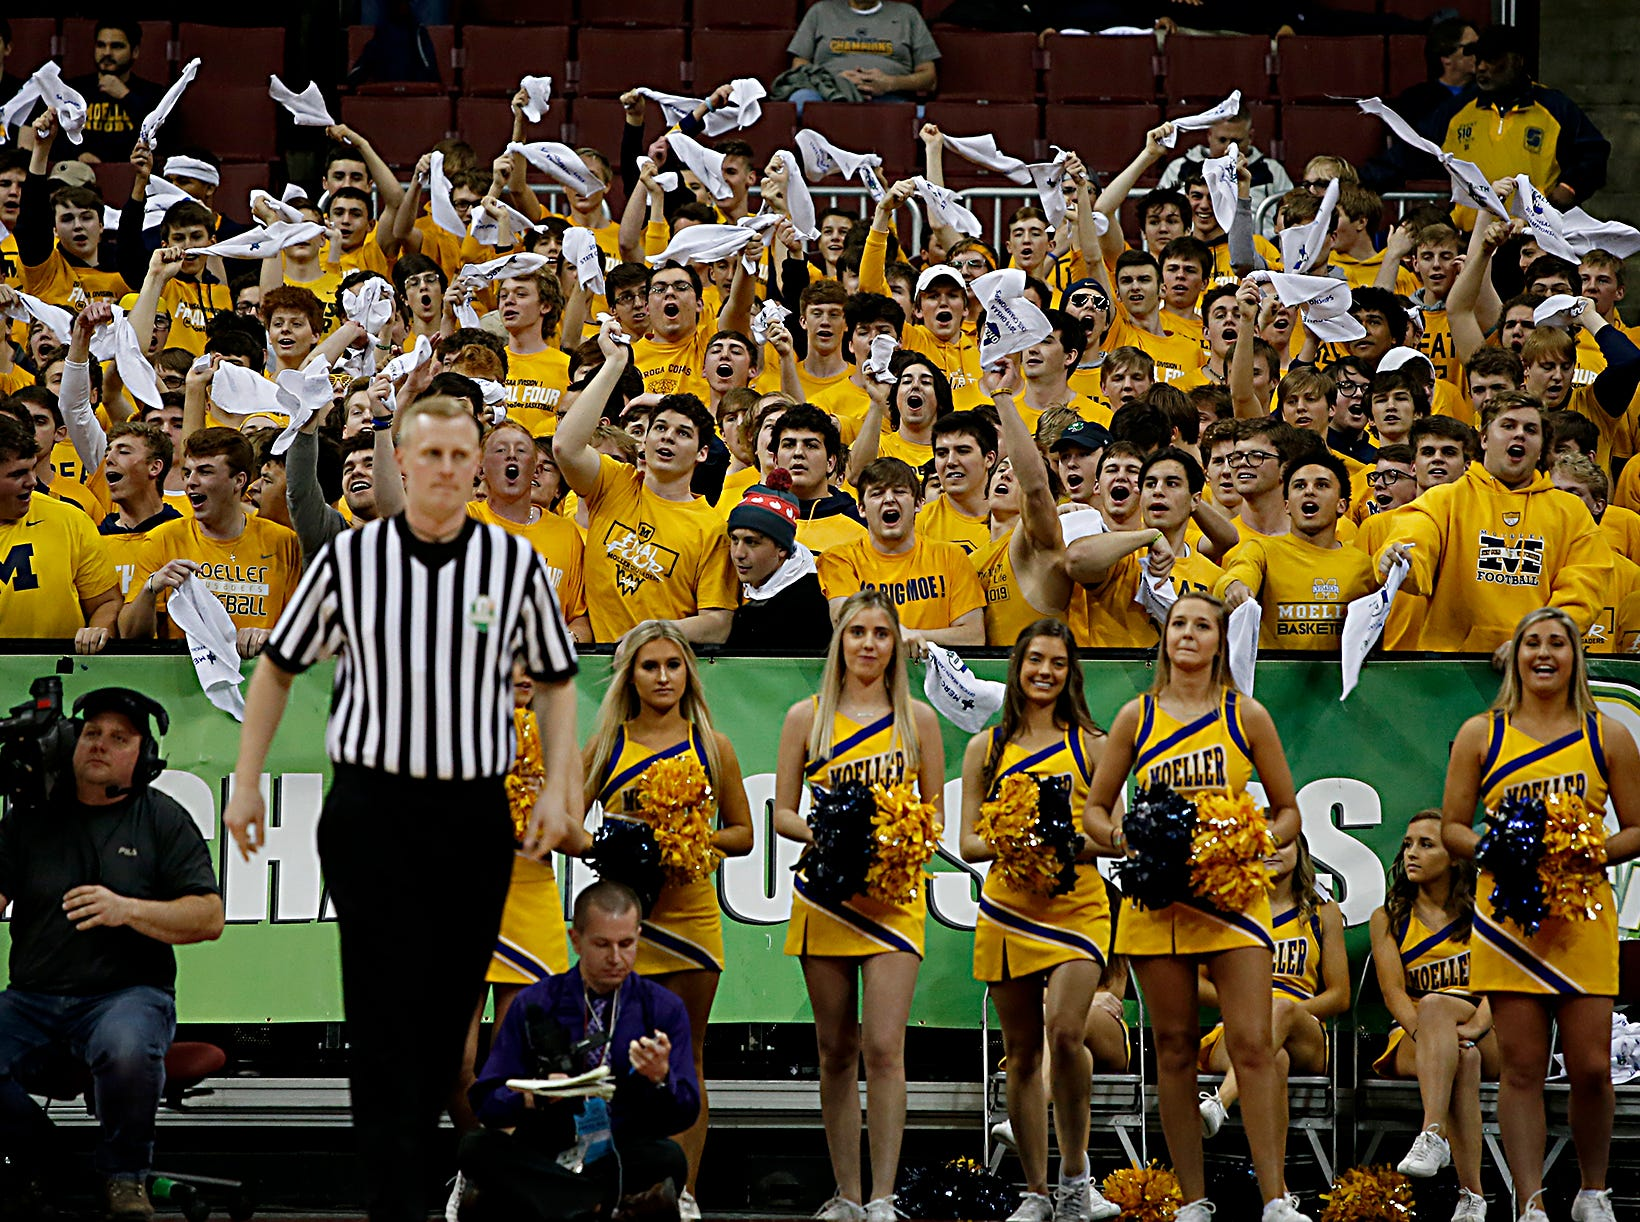 Moeller students wave their towels as their team faces St. Edward in a Division I semifinal at the Schottenstein Center in Columbus Friday, March 22, 2019.